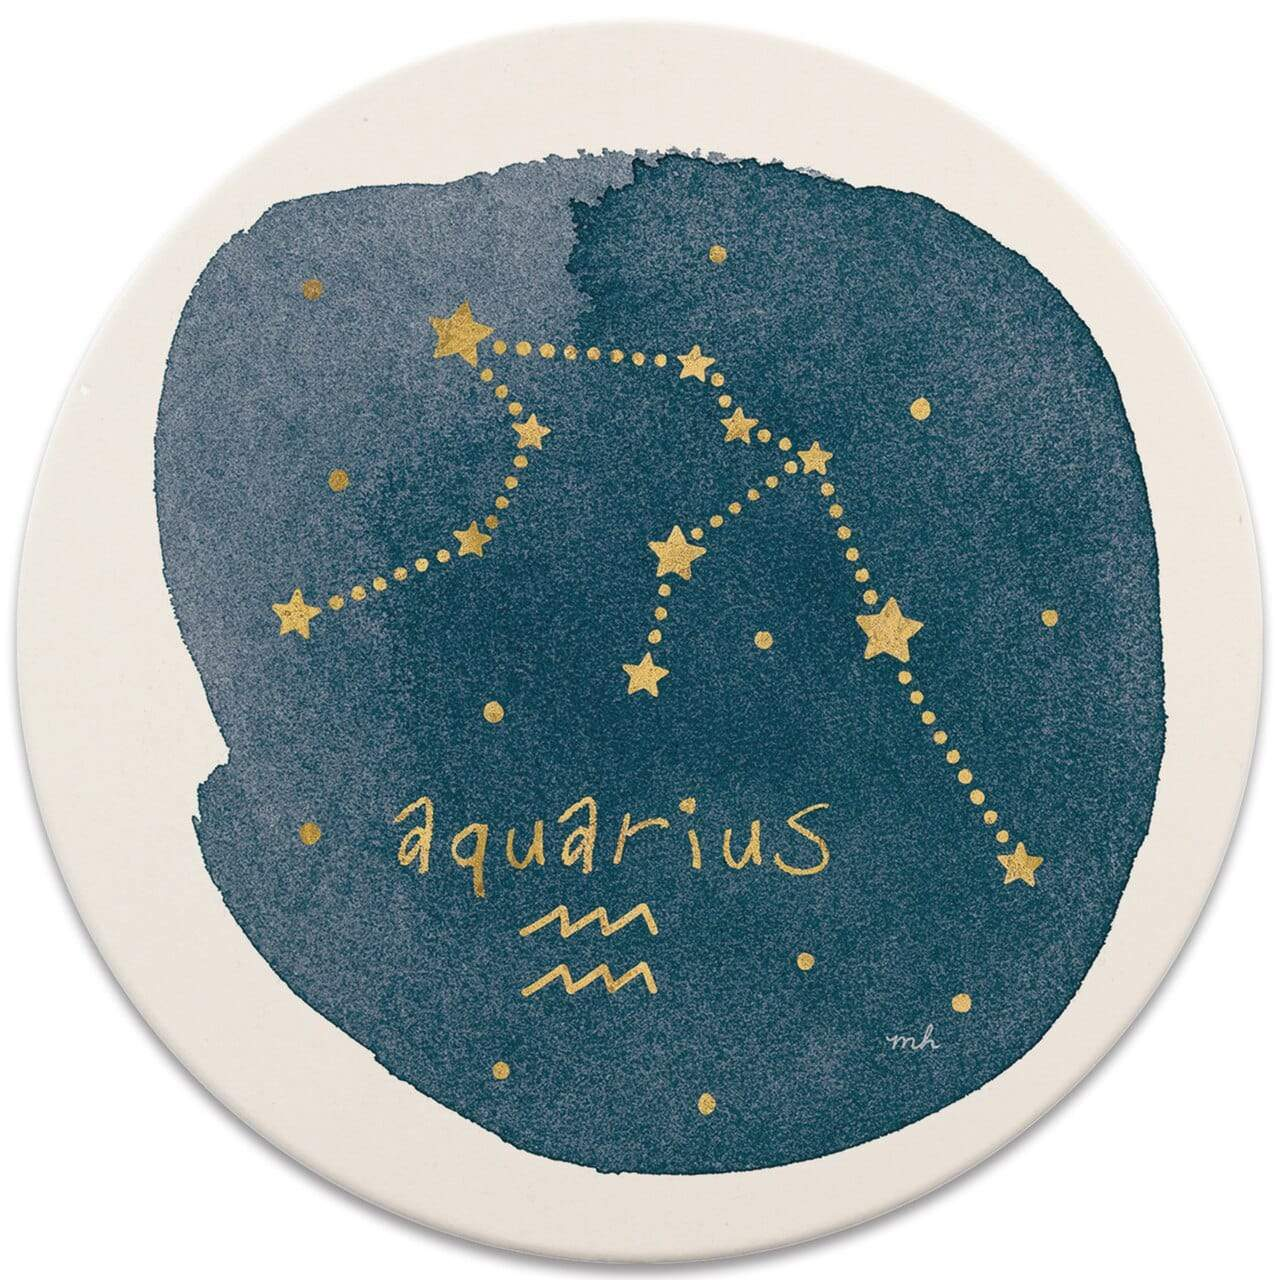 CoasterStone Coasters Aquarius Sign Coaster - Set of 4